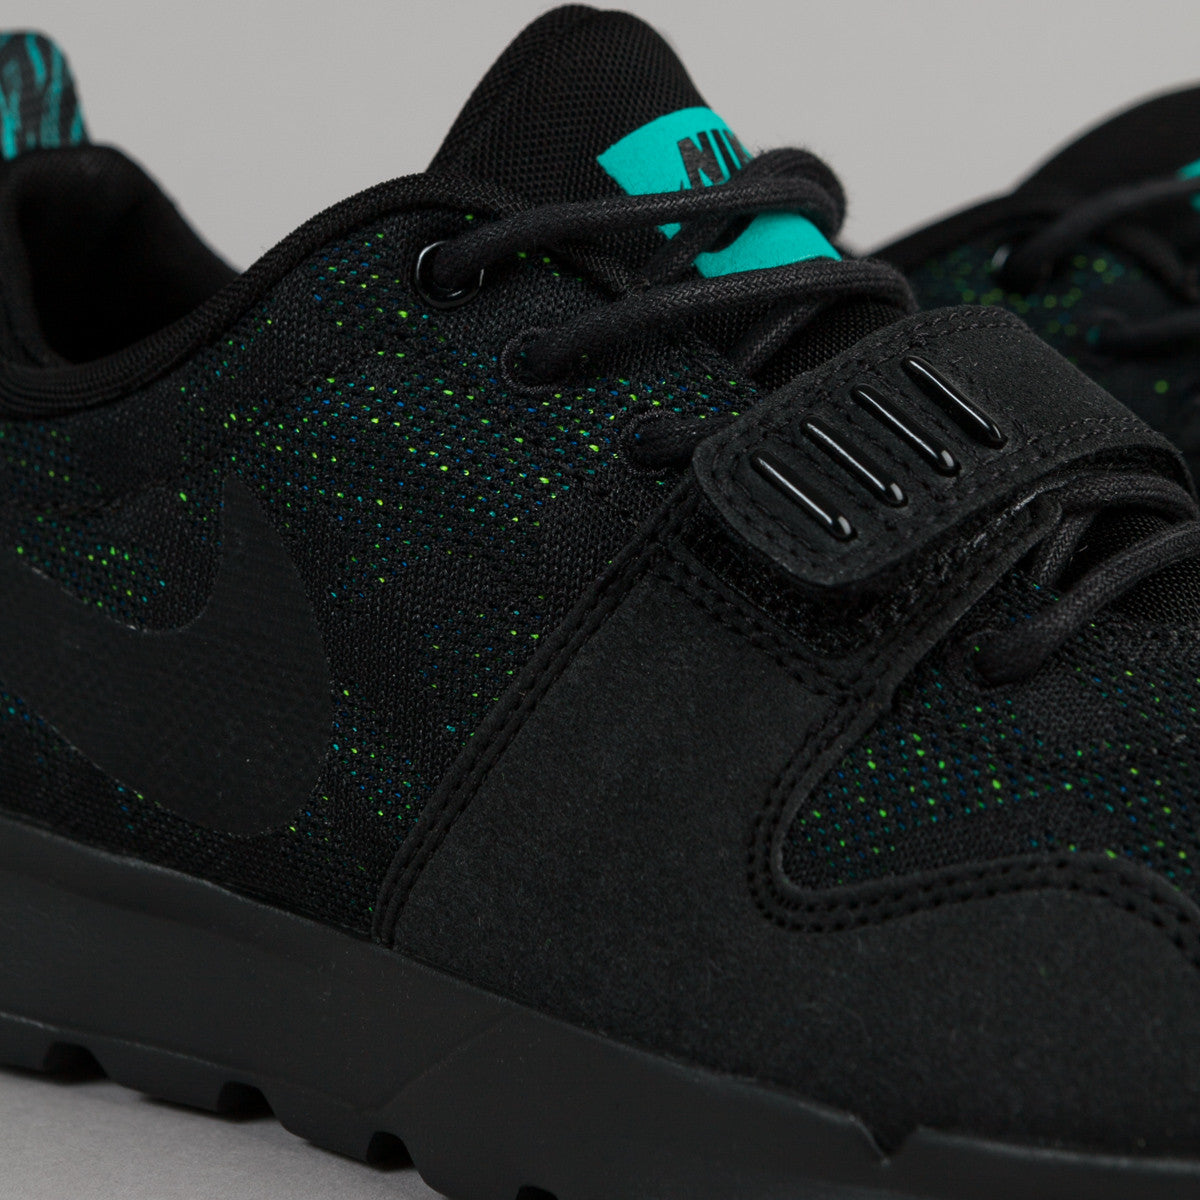 Nike SB Trainerendor Shoes - Black / Black - Clear Jade - Volt